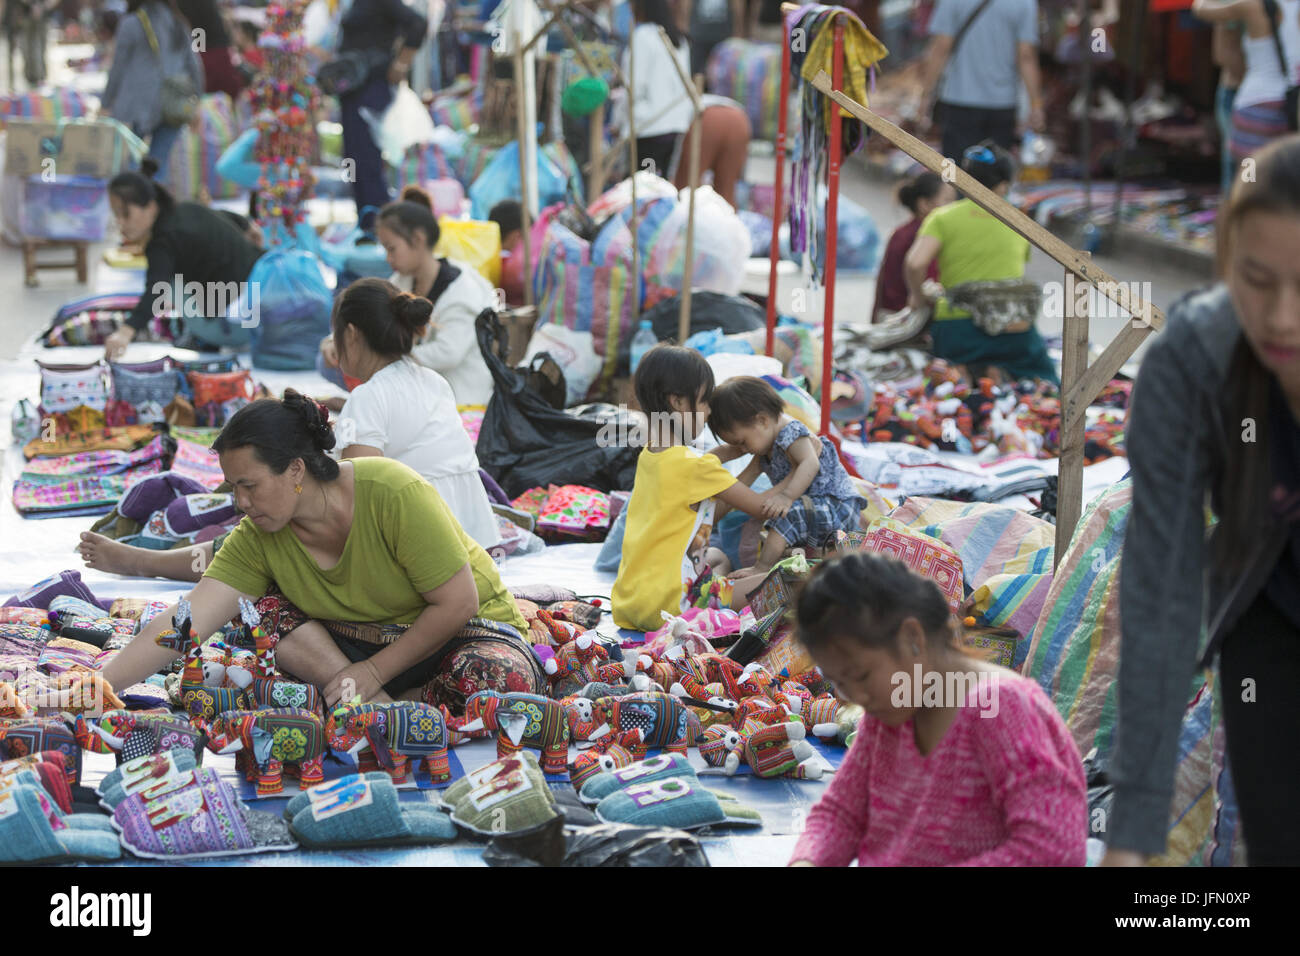 LAOS LUANG PRABANG NIGHTMARKET HANDICRAFT - Stock Image